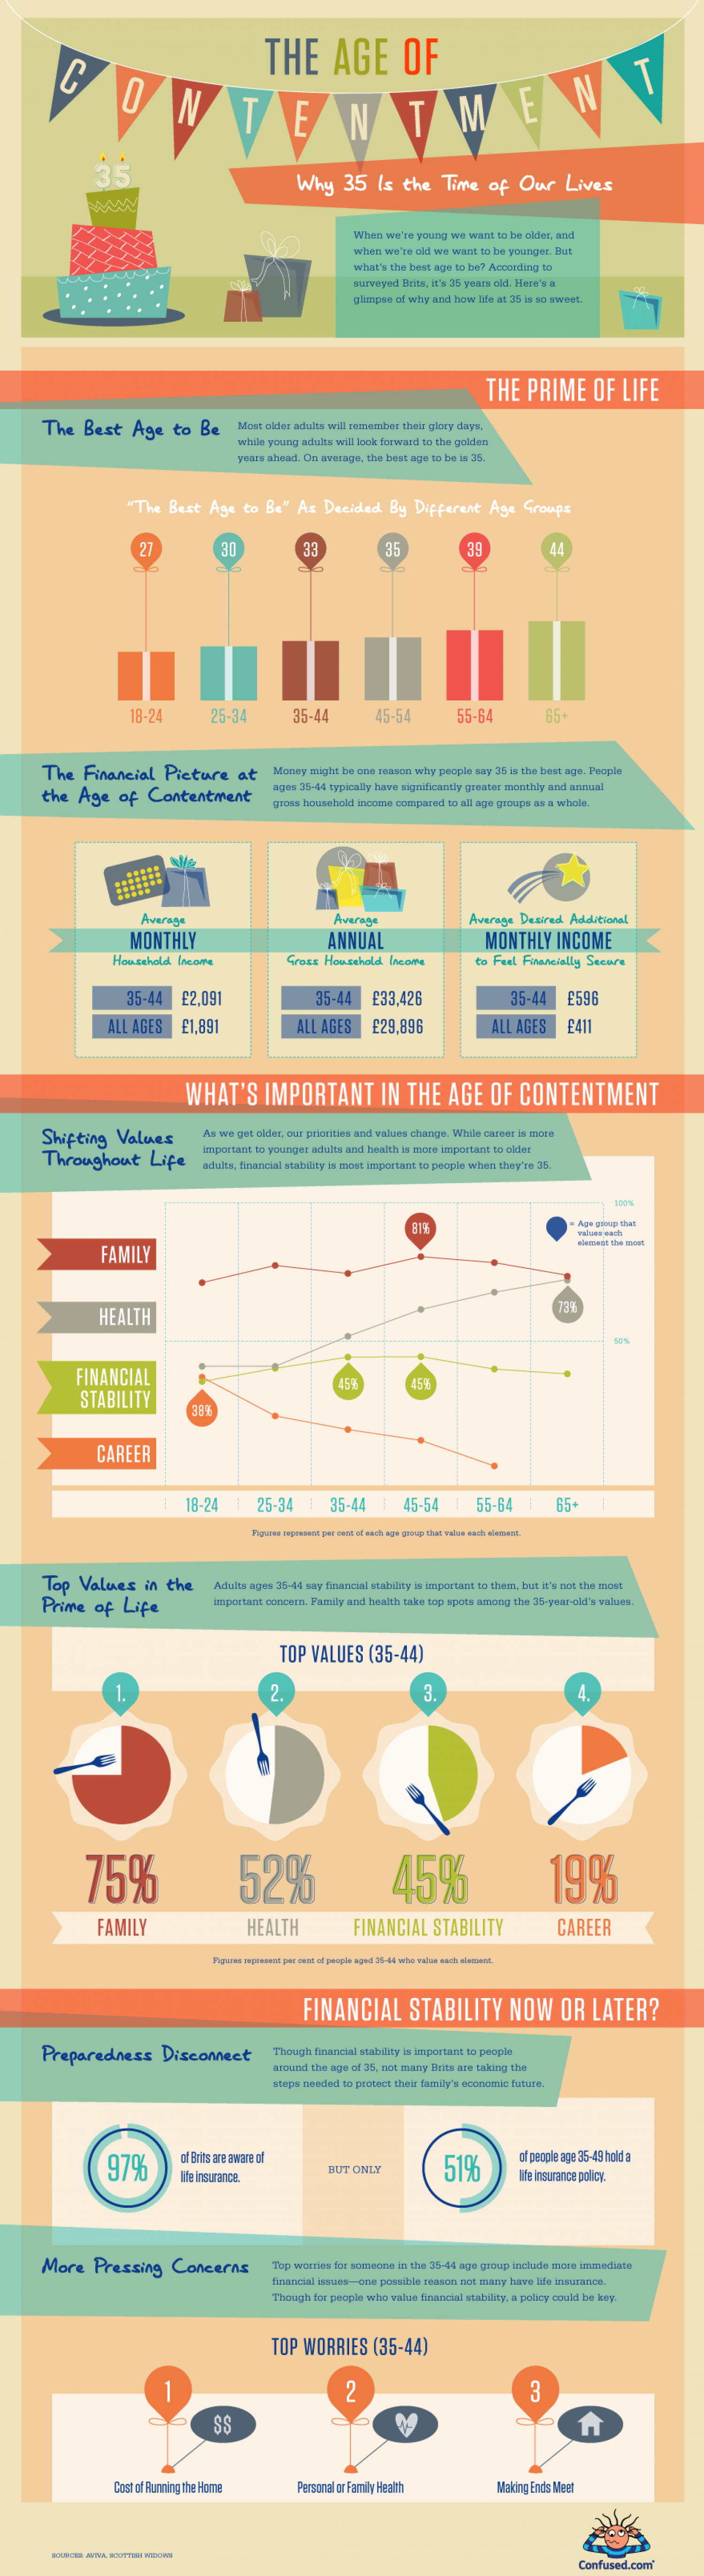 The Age of Contentment: Why 35 is the Time of Our Lives Infographic